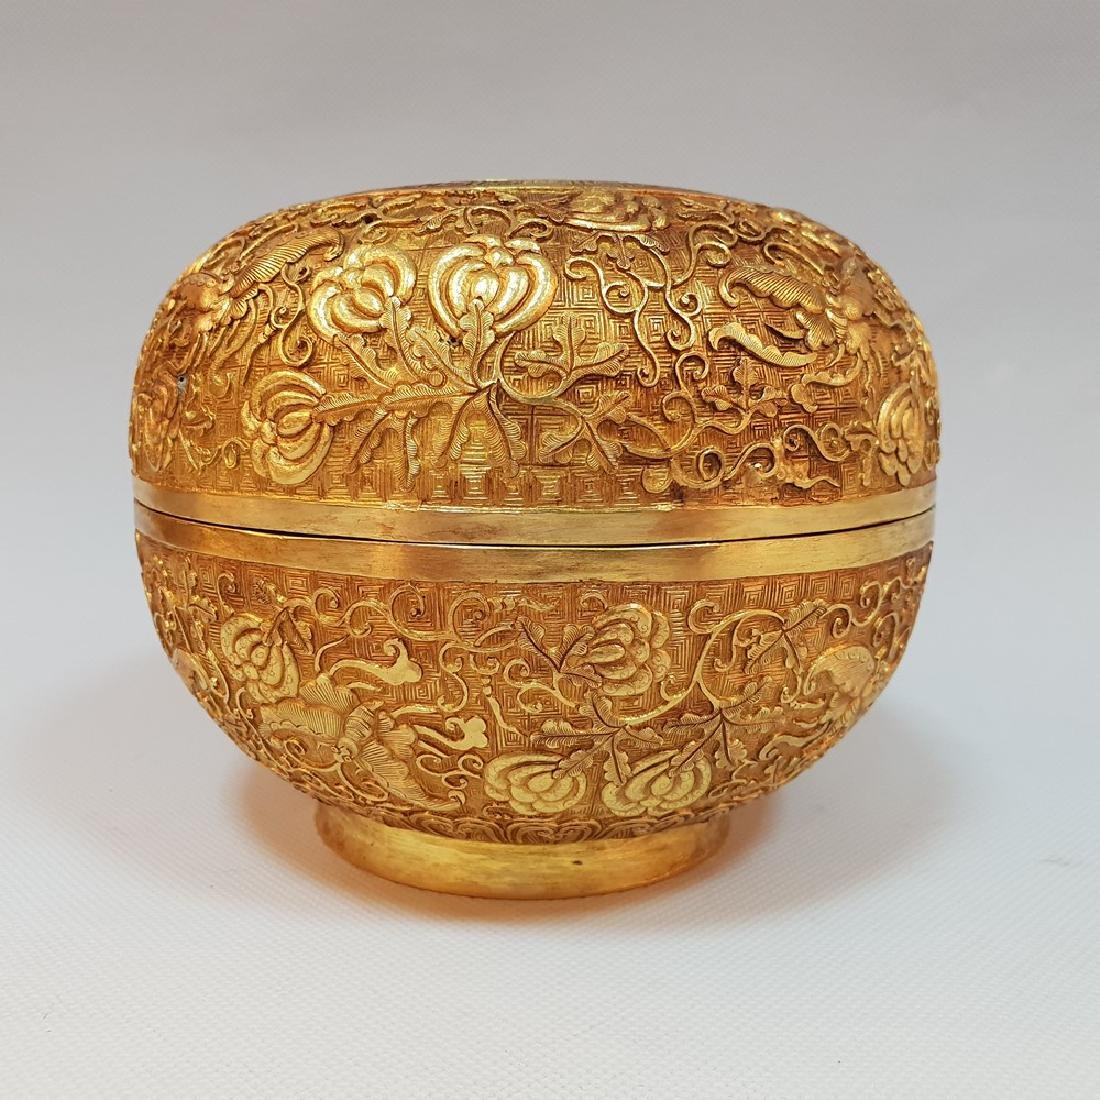 A CARVED GILT-GOLD BOX AND COVER ,MING DYNASTY